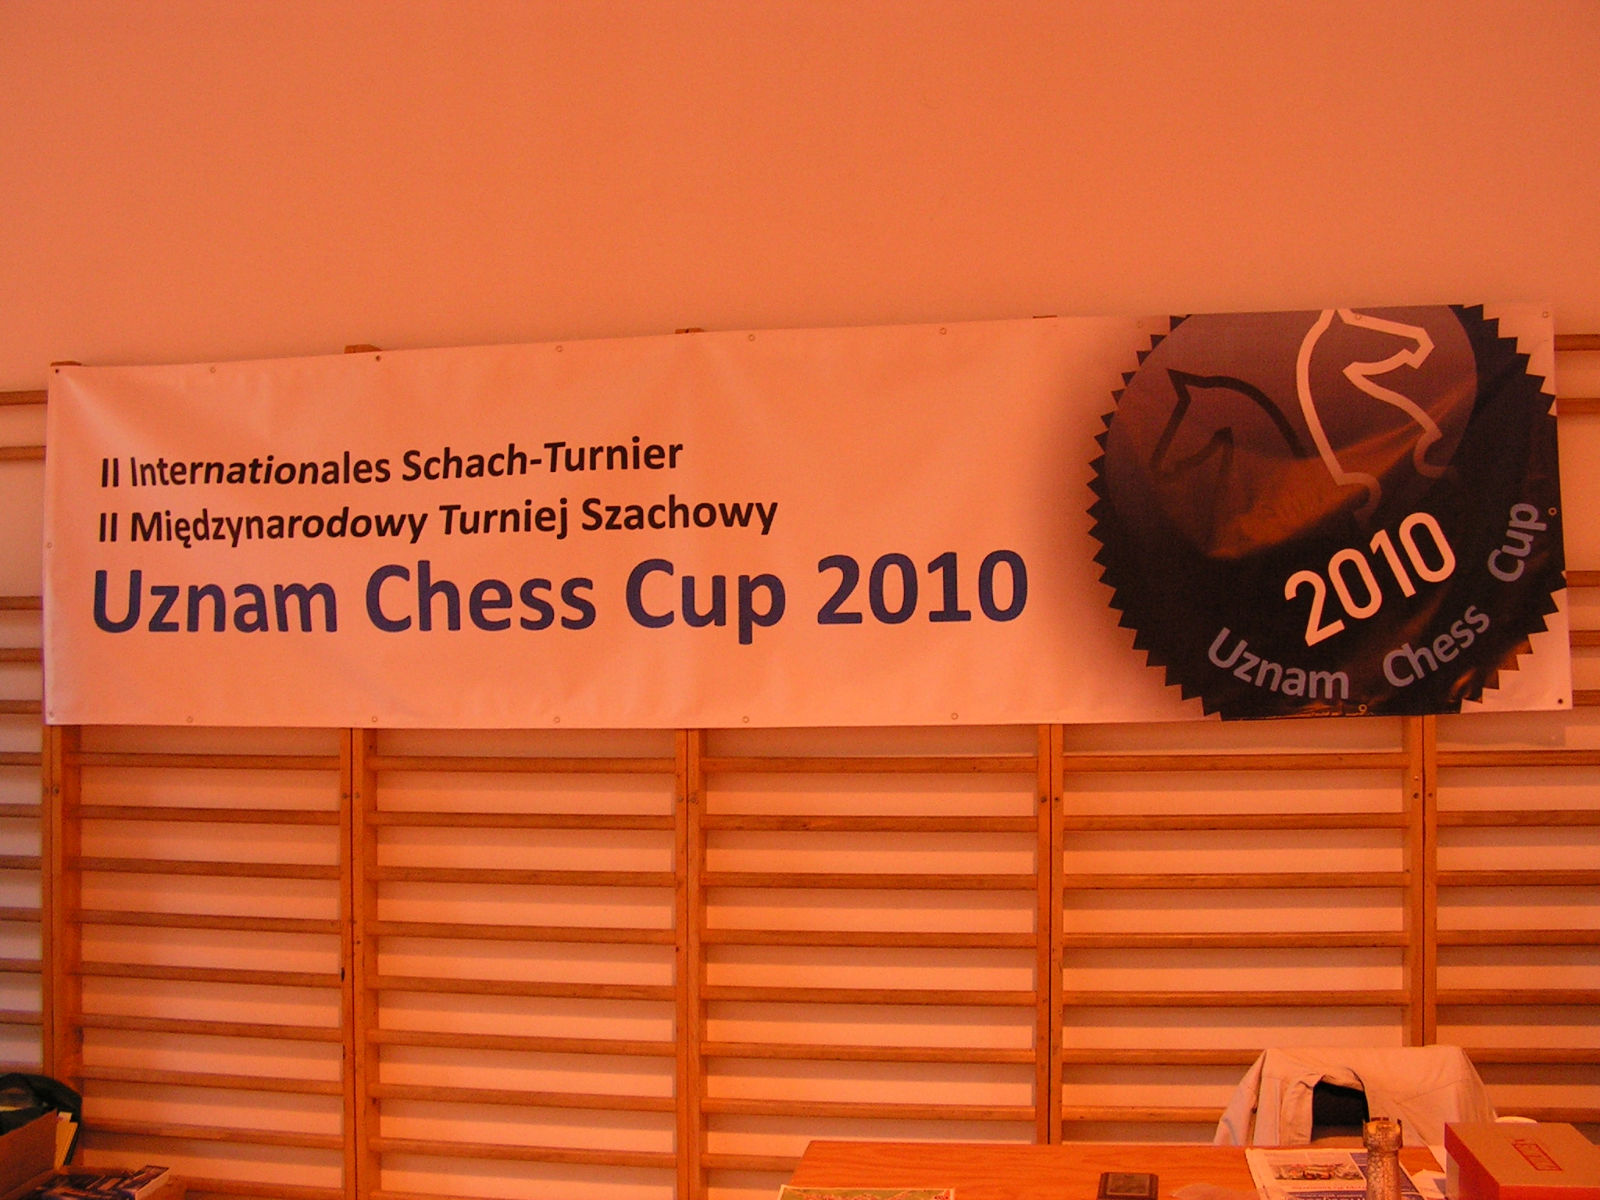 Usedomer CHESS CUP 2010